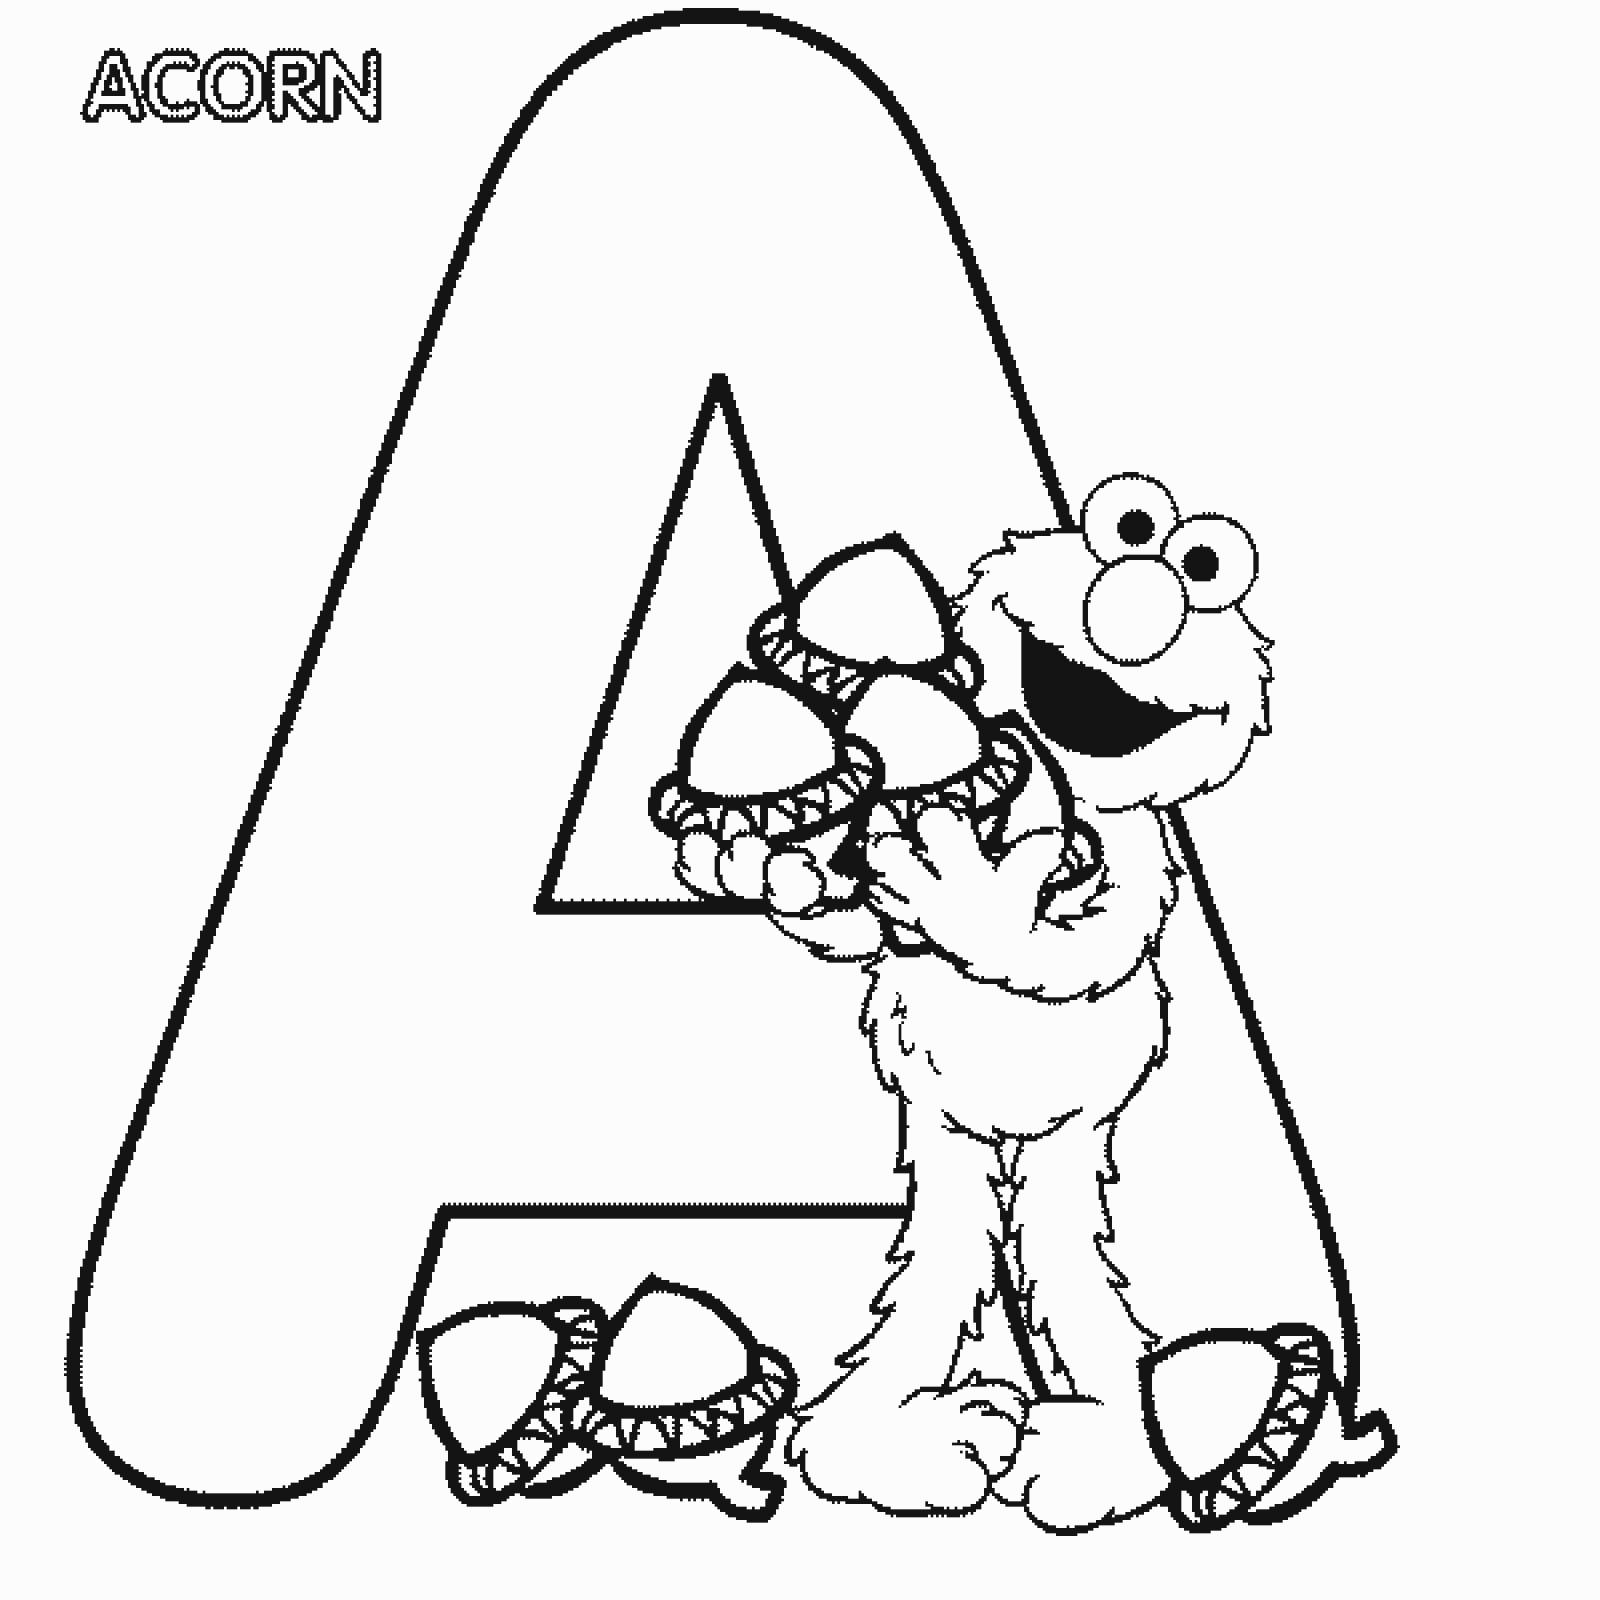 1600x1600 Abc Coloring Pages